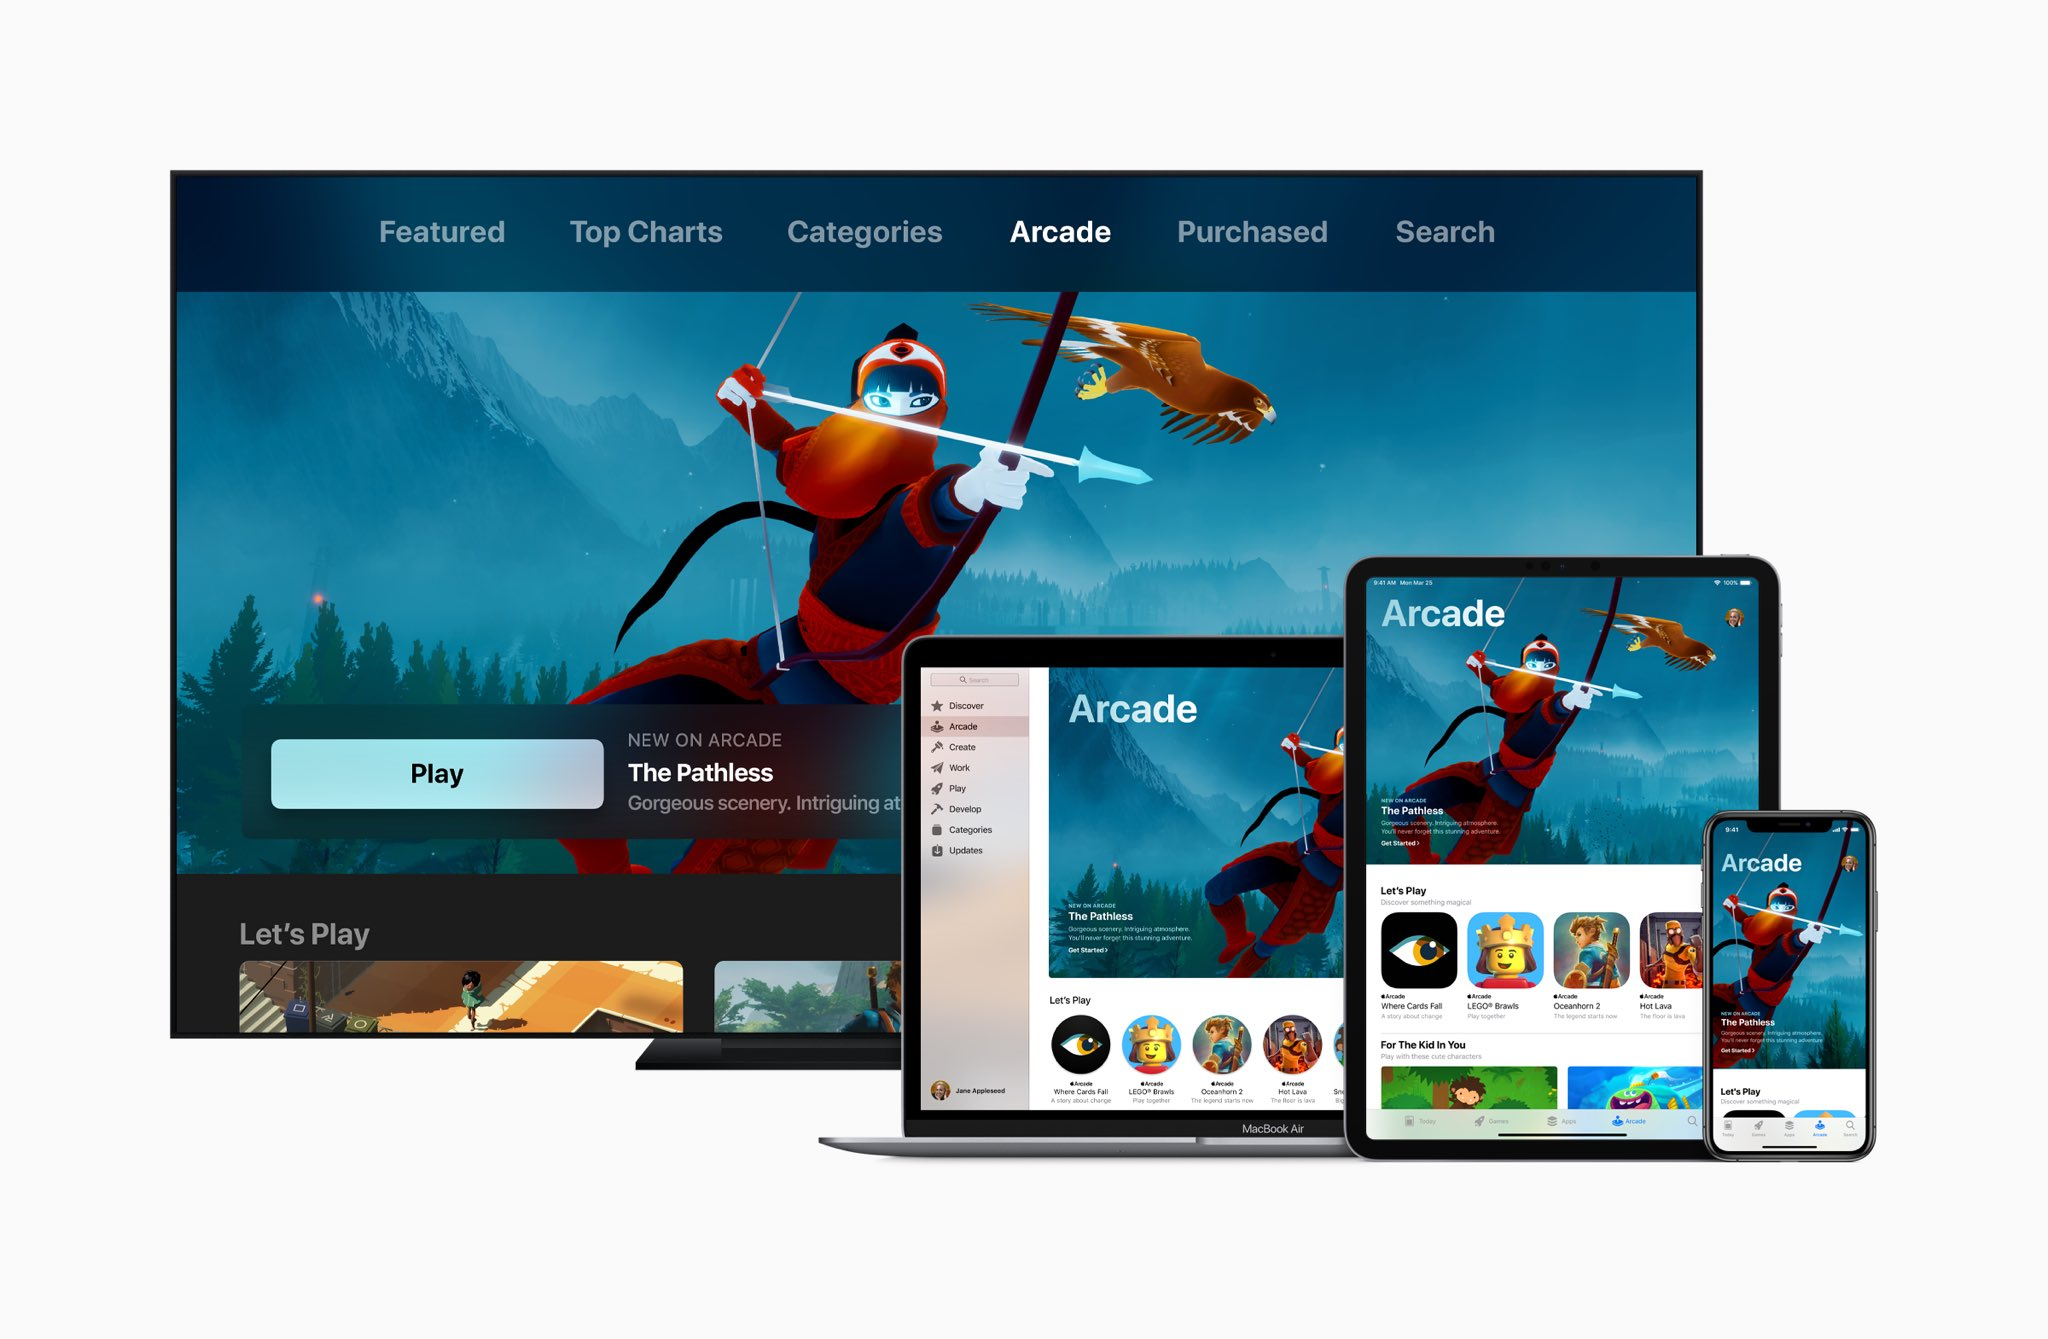 Apple announces 'Apple Arcade' game subscription service